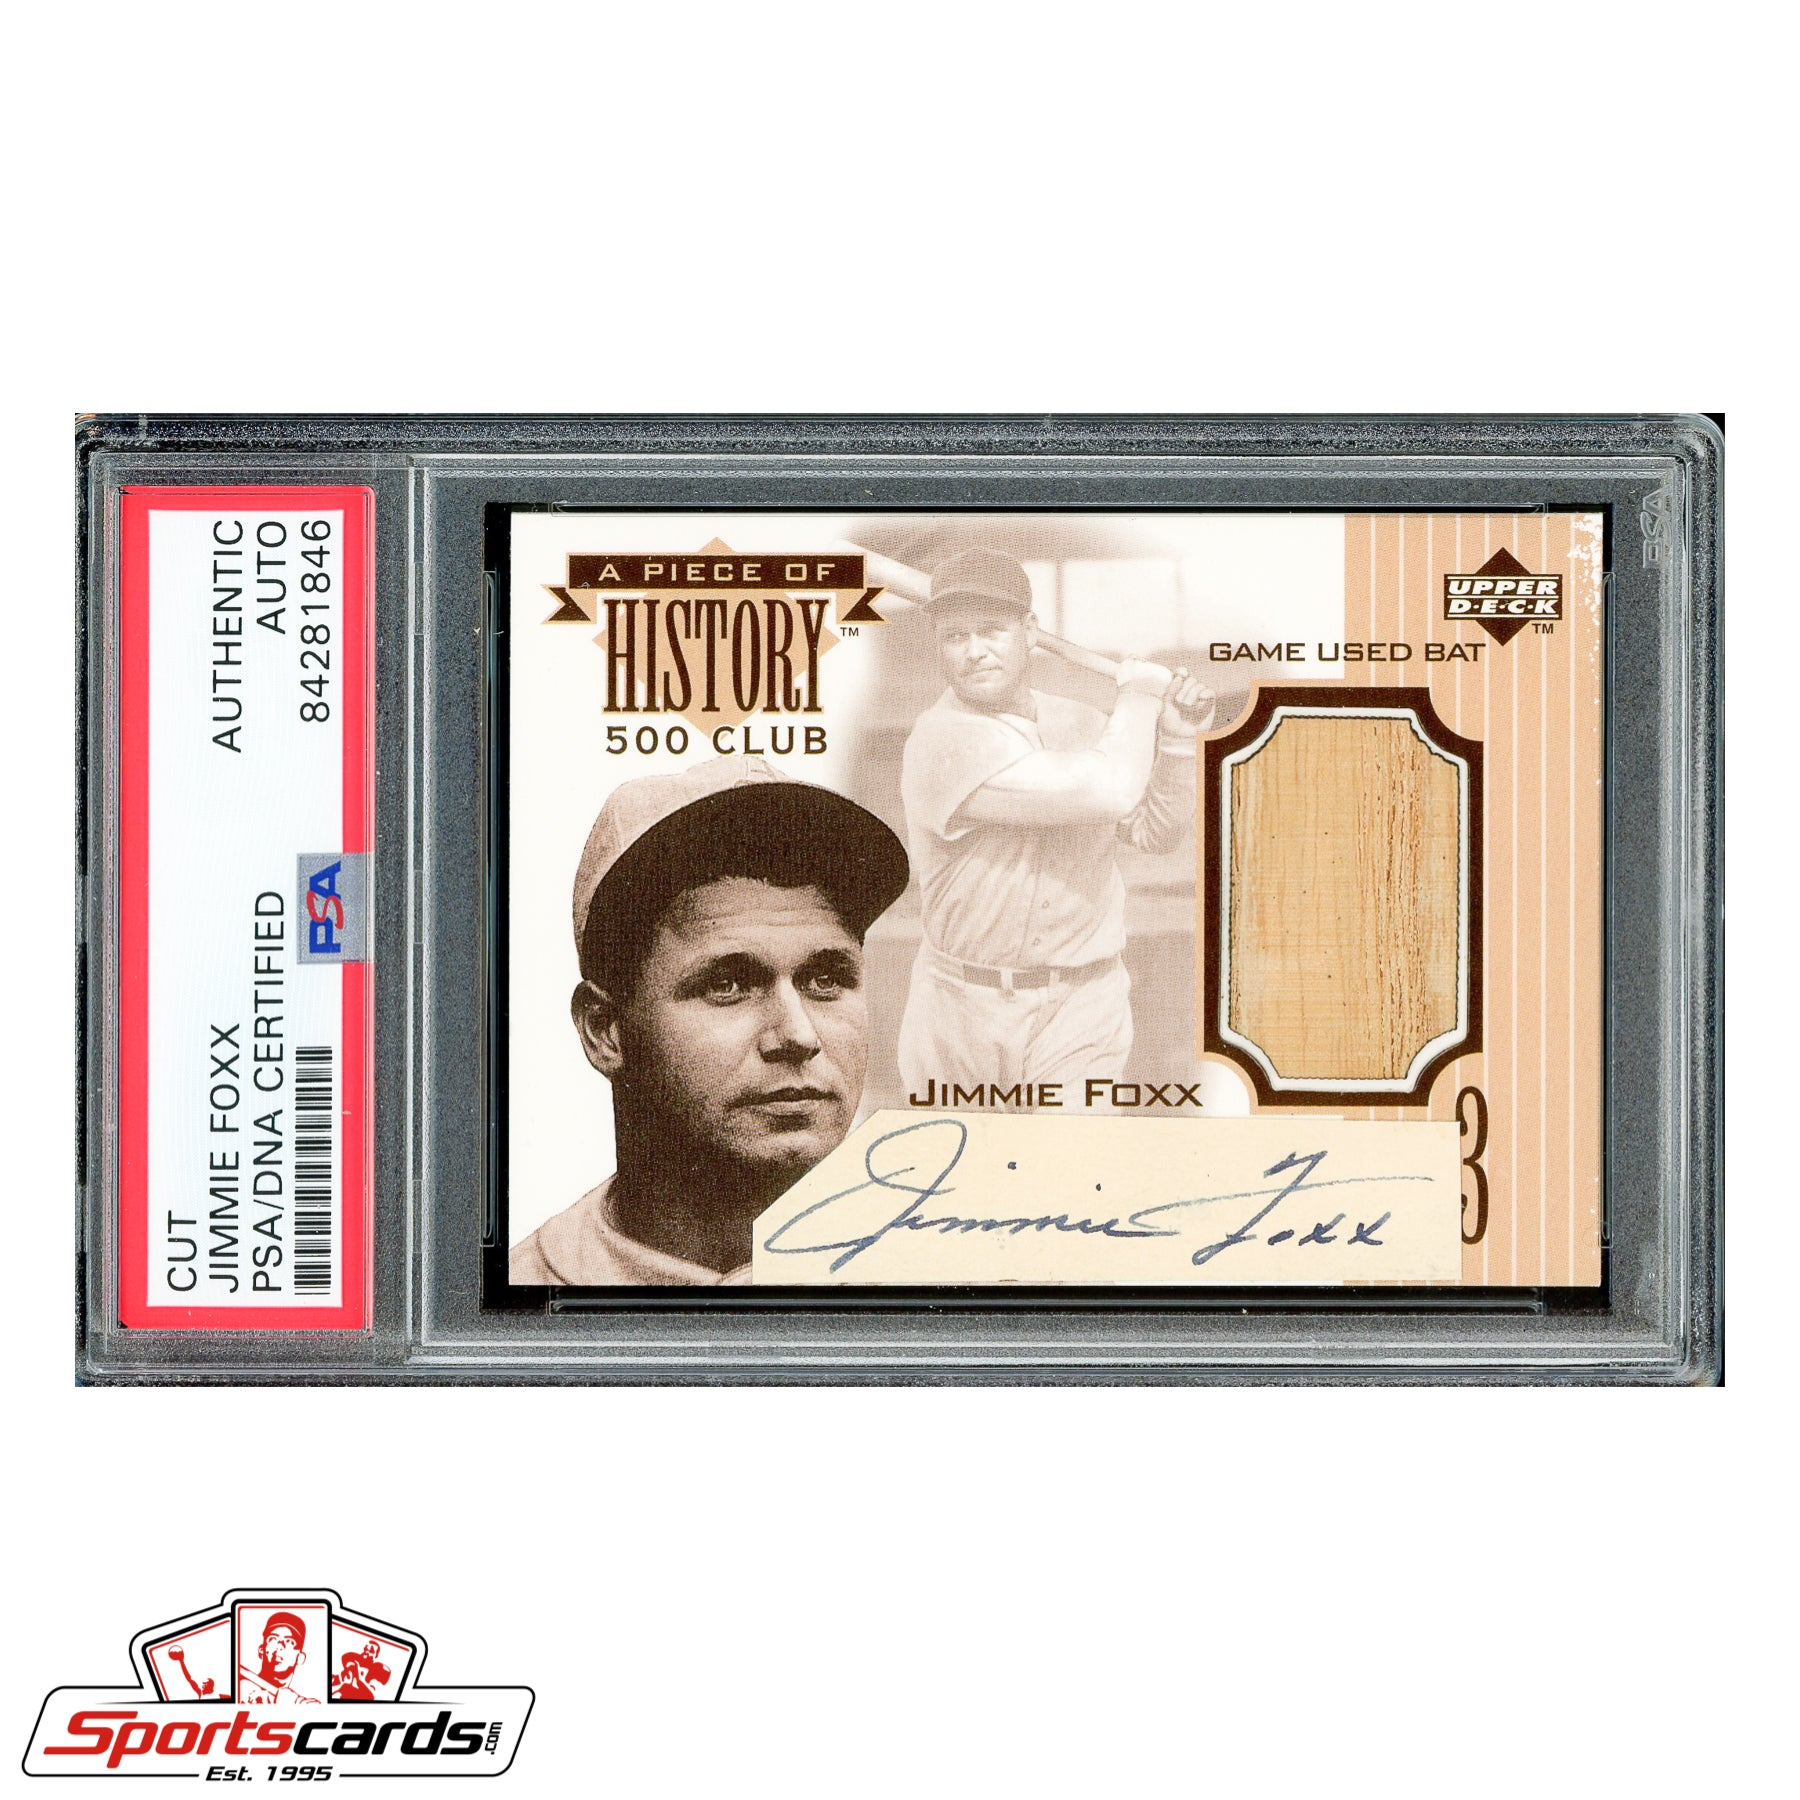 Jimmie Foxx Signed Auto 1999 Upper Deck Piece of History 500 Club Bat Card PSA/DNA